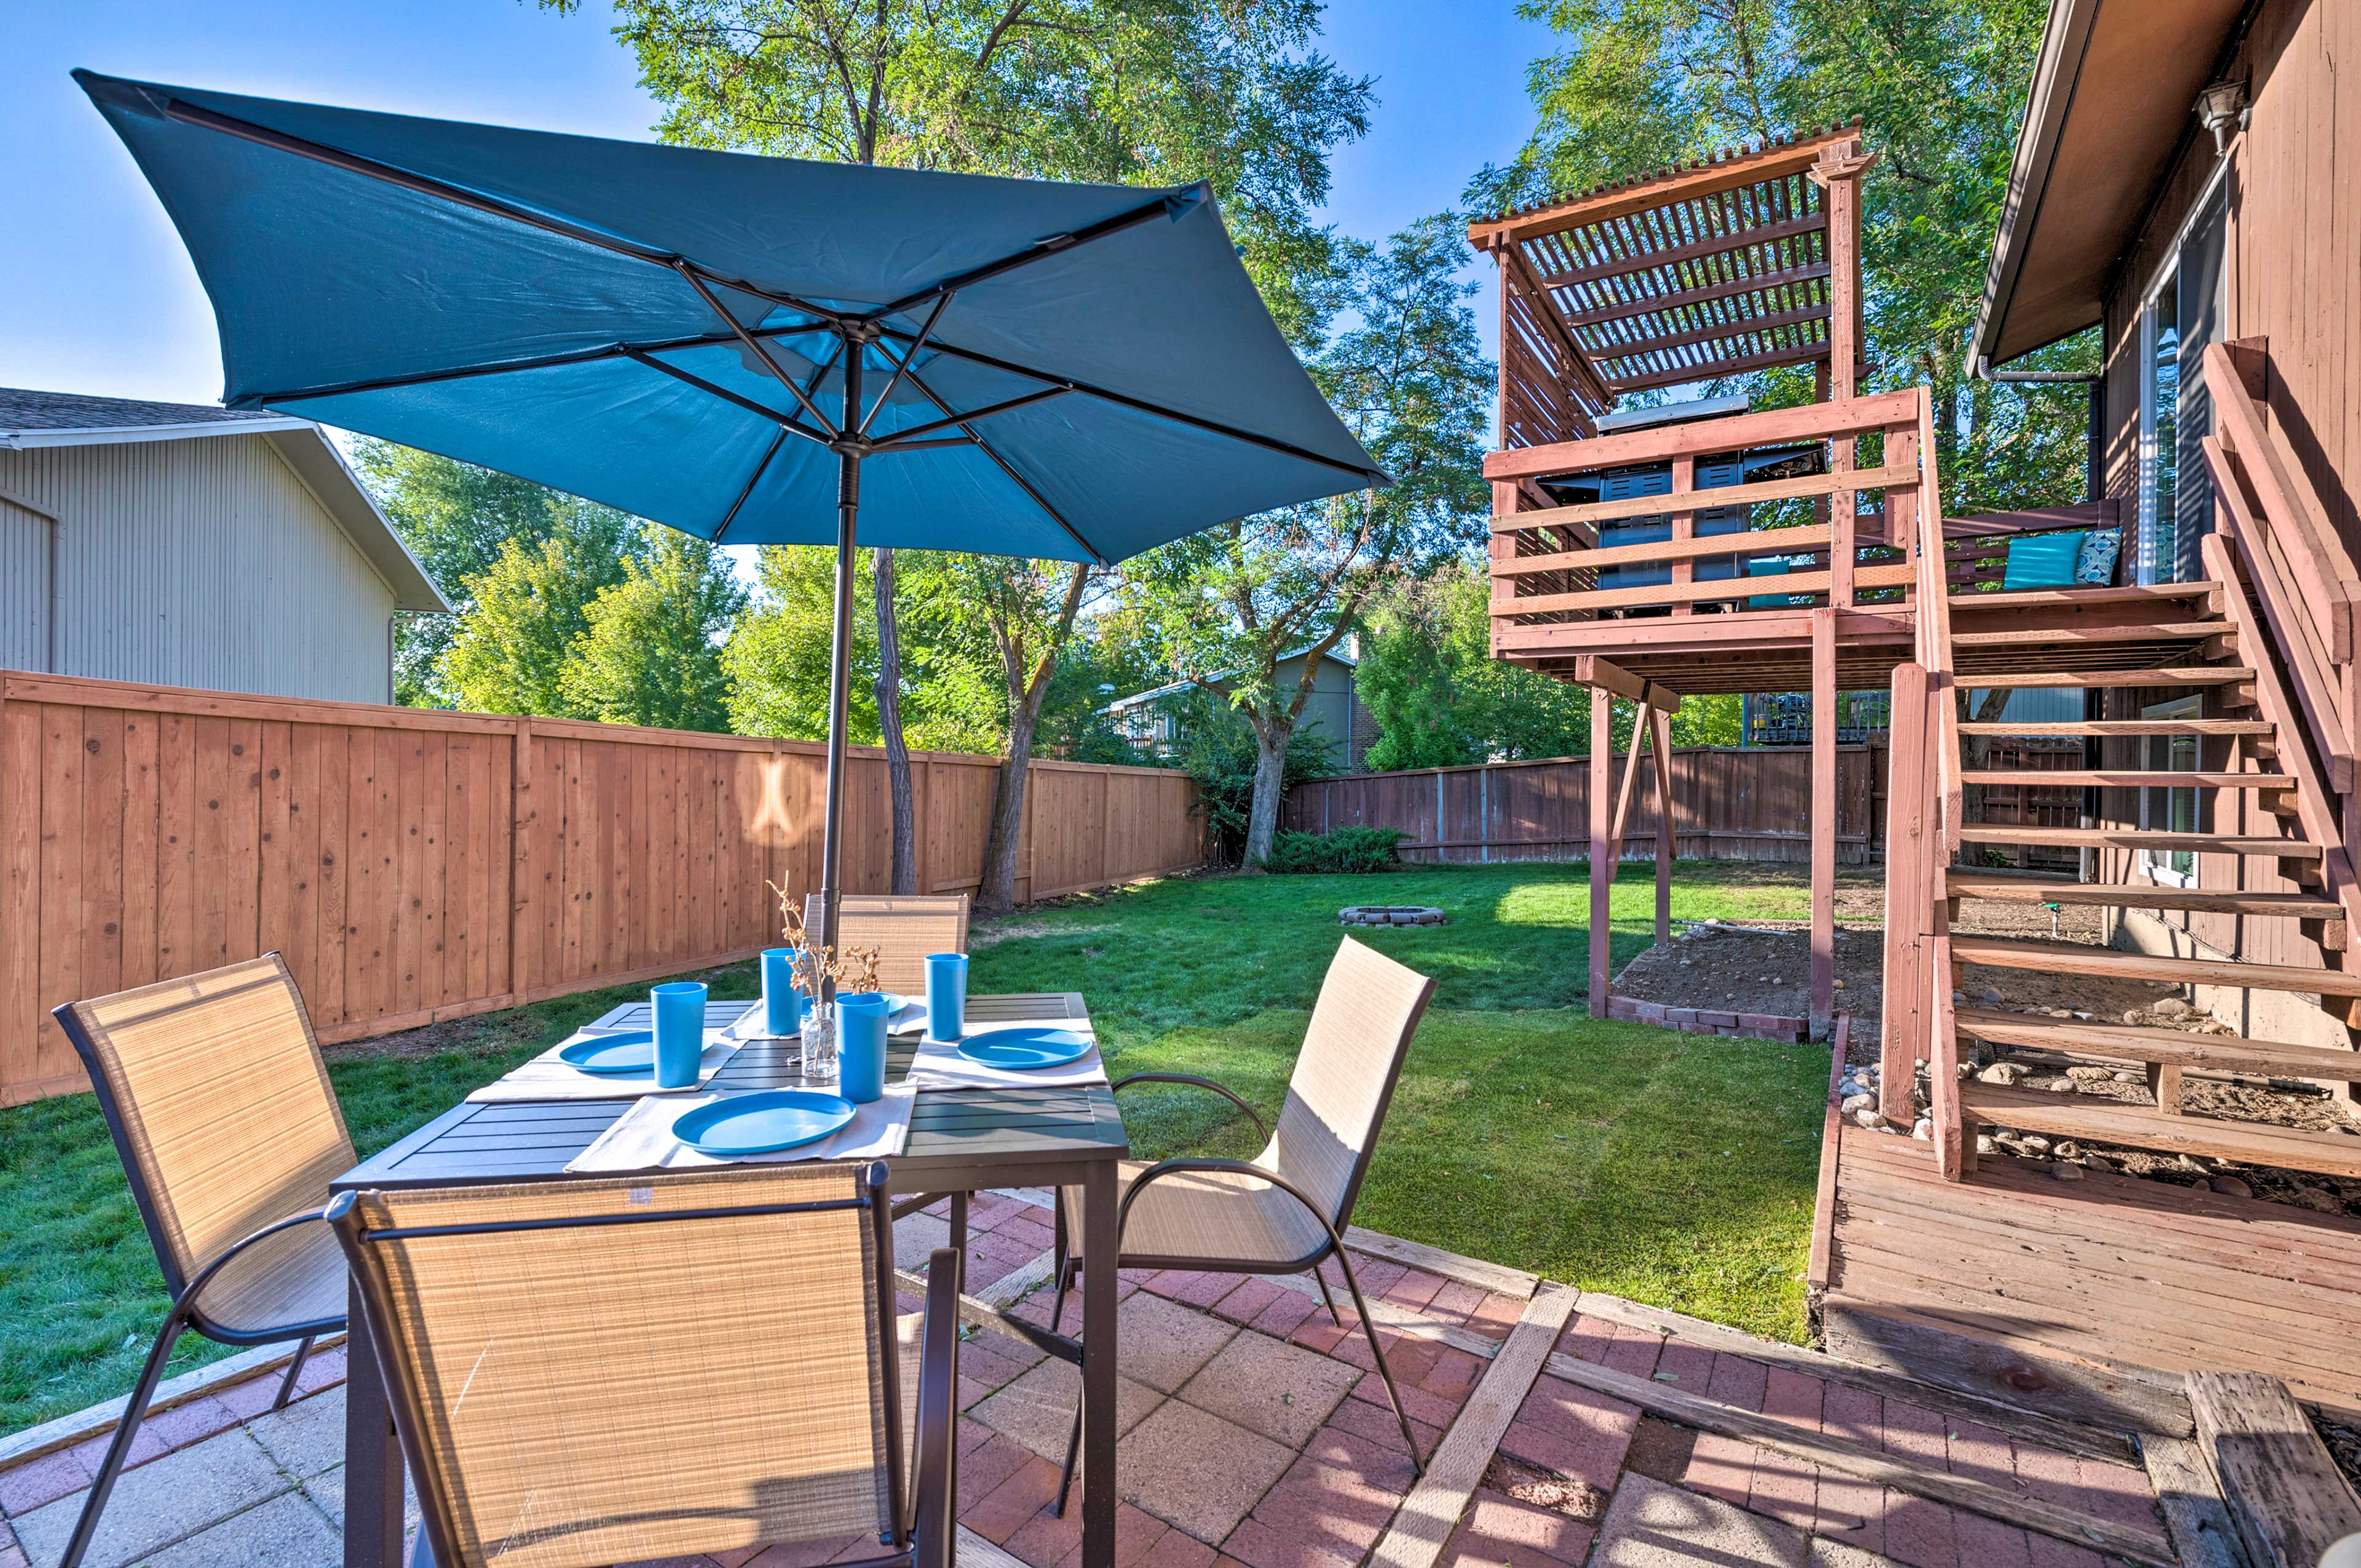 Enjoy a meal together on the back patio of this vacation rental.